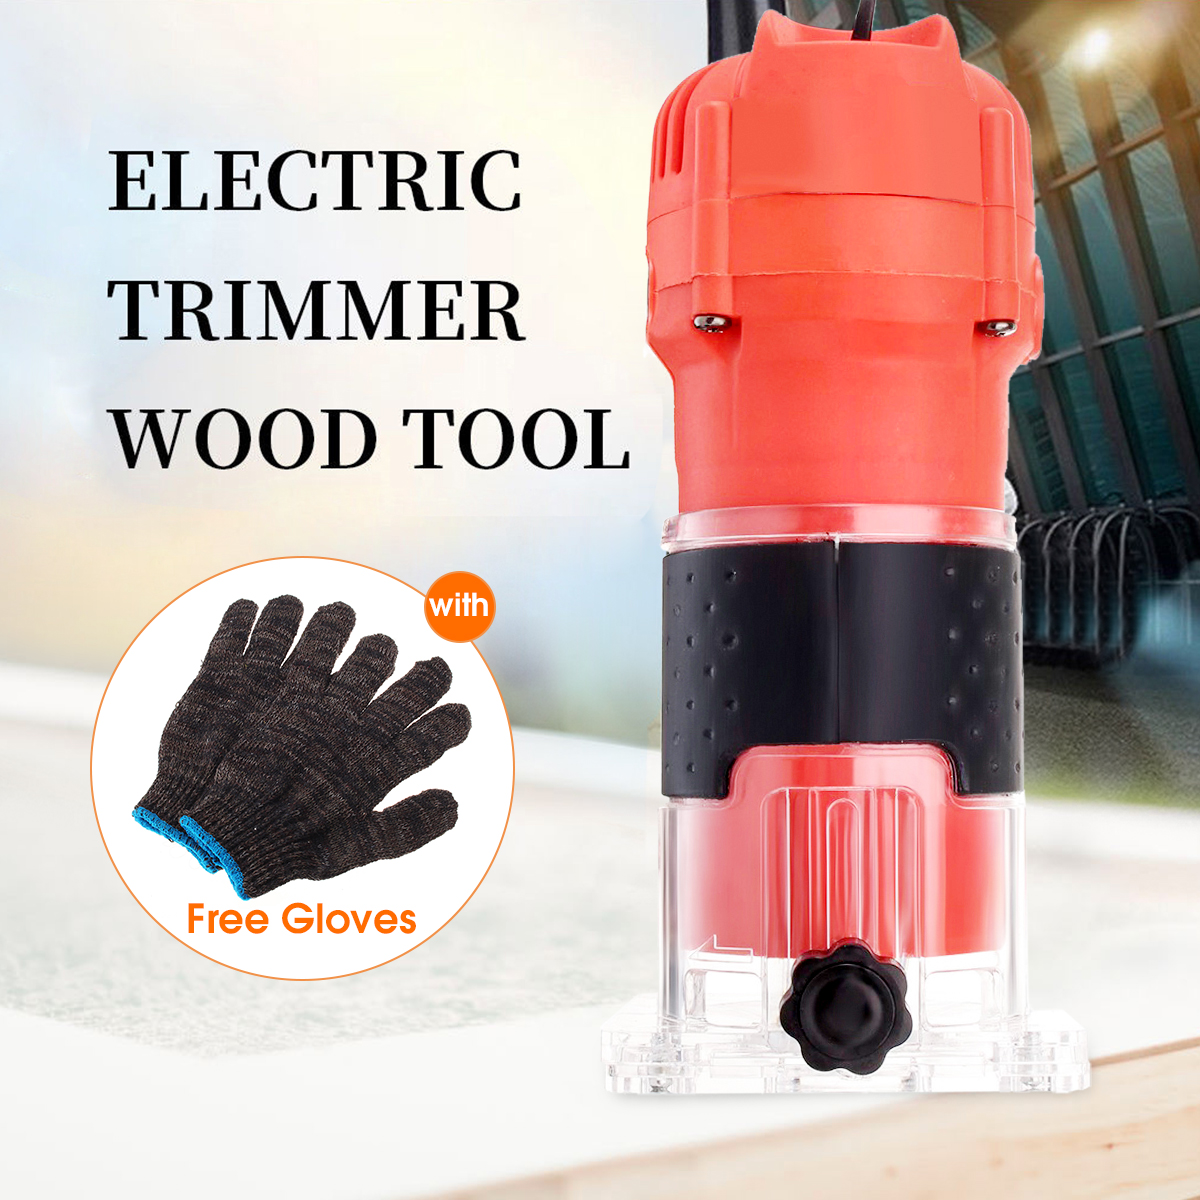 500W 14 Inch Electric Hand Trimmer Wood Laminate Router Joiners Tool 30000RPM for DIY Woodworking Power Tool